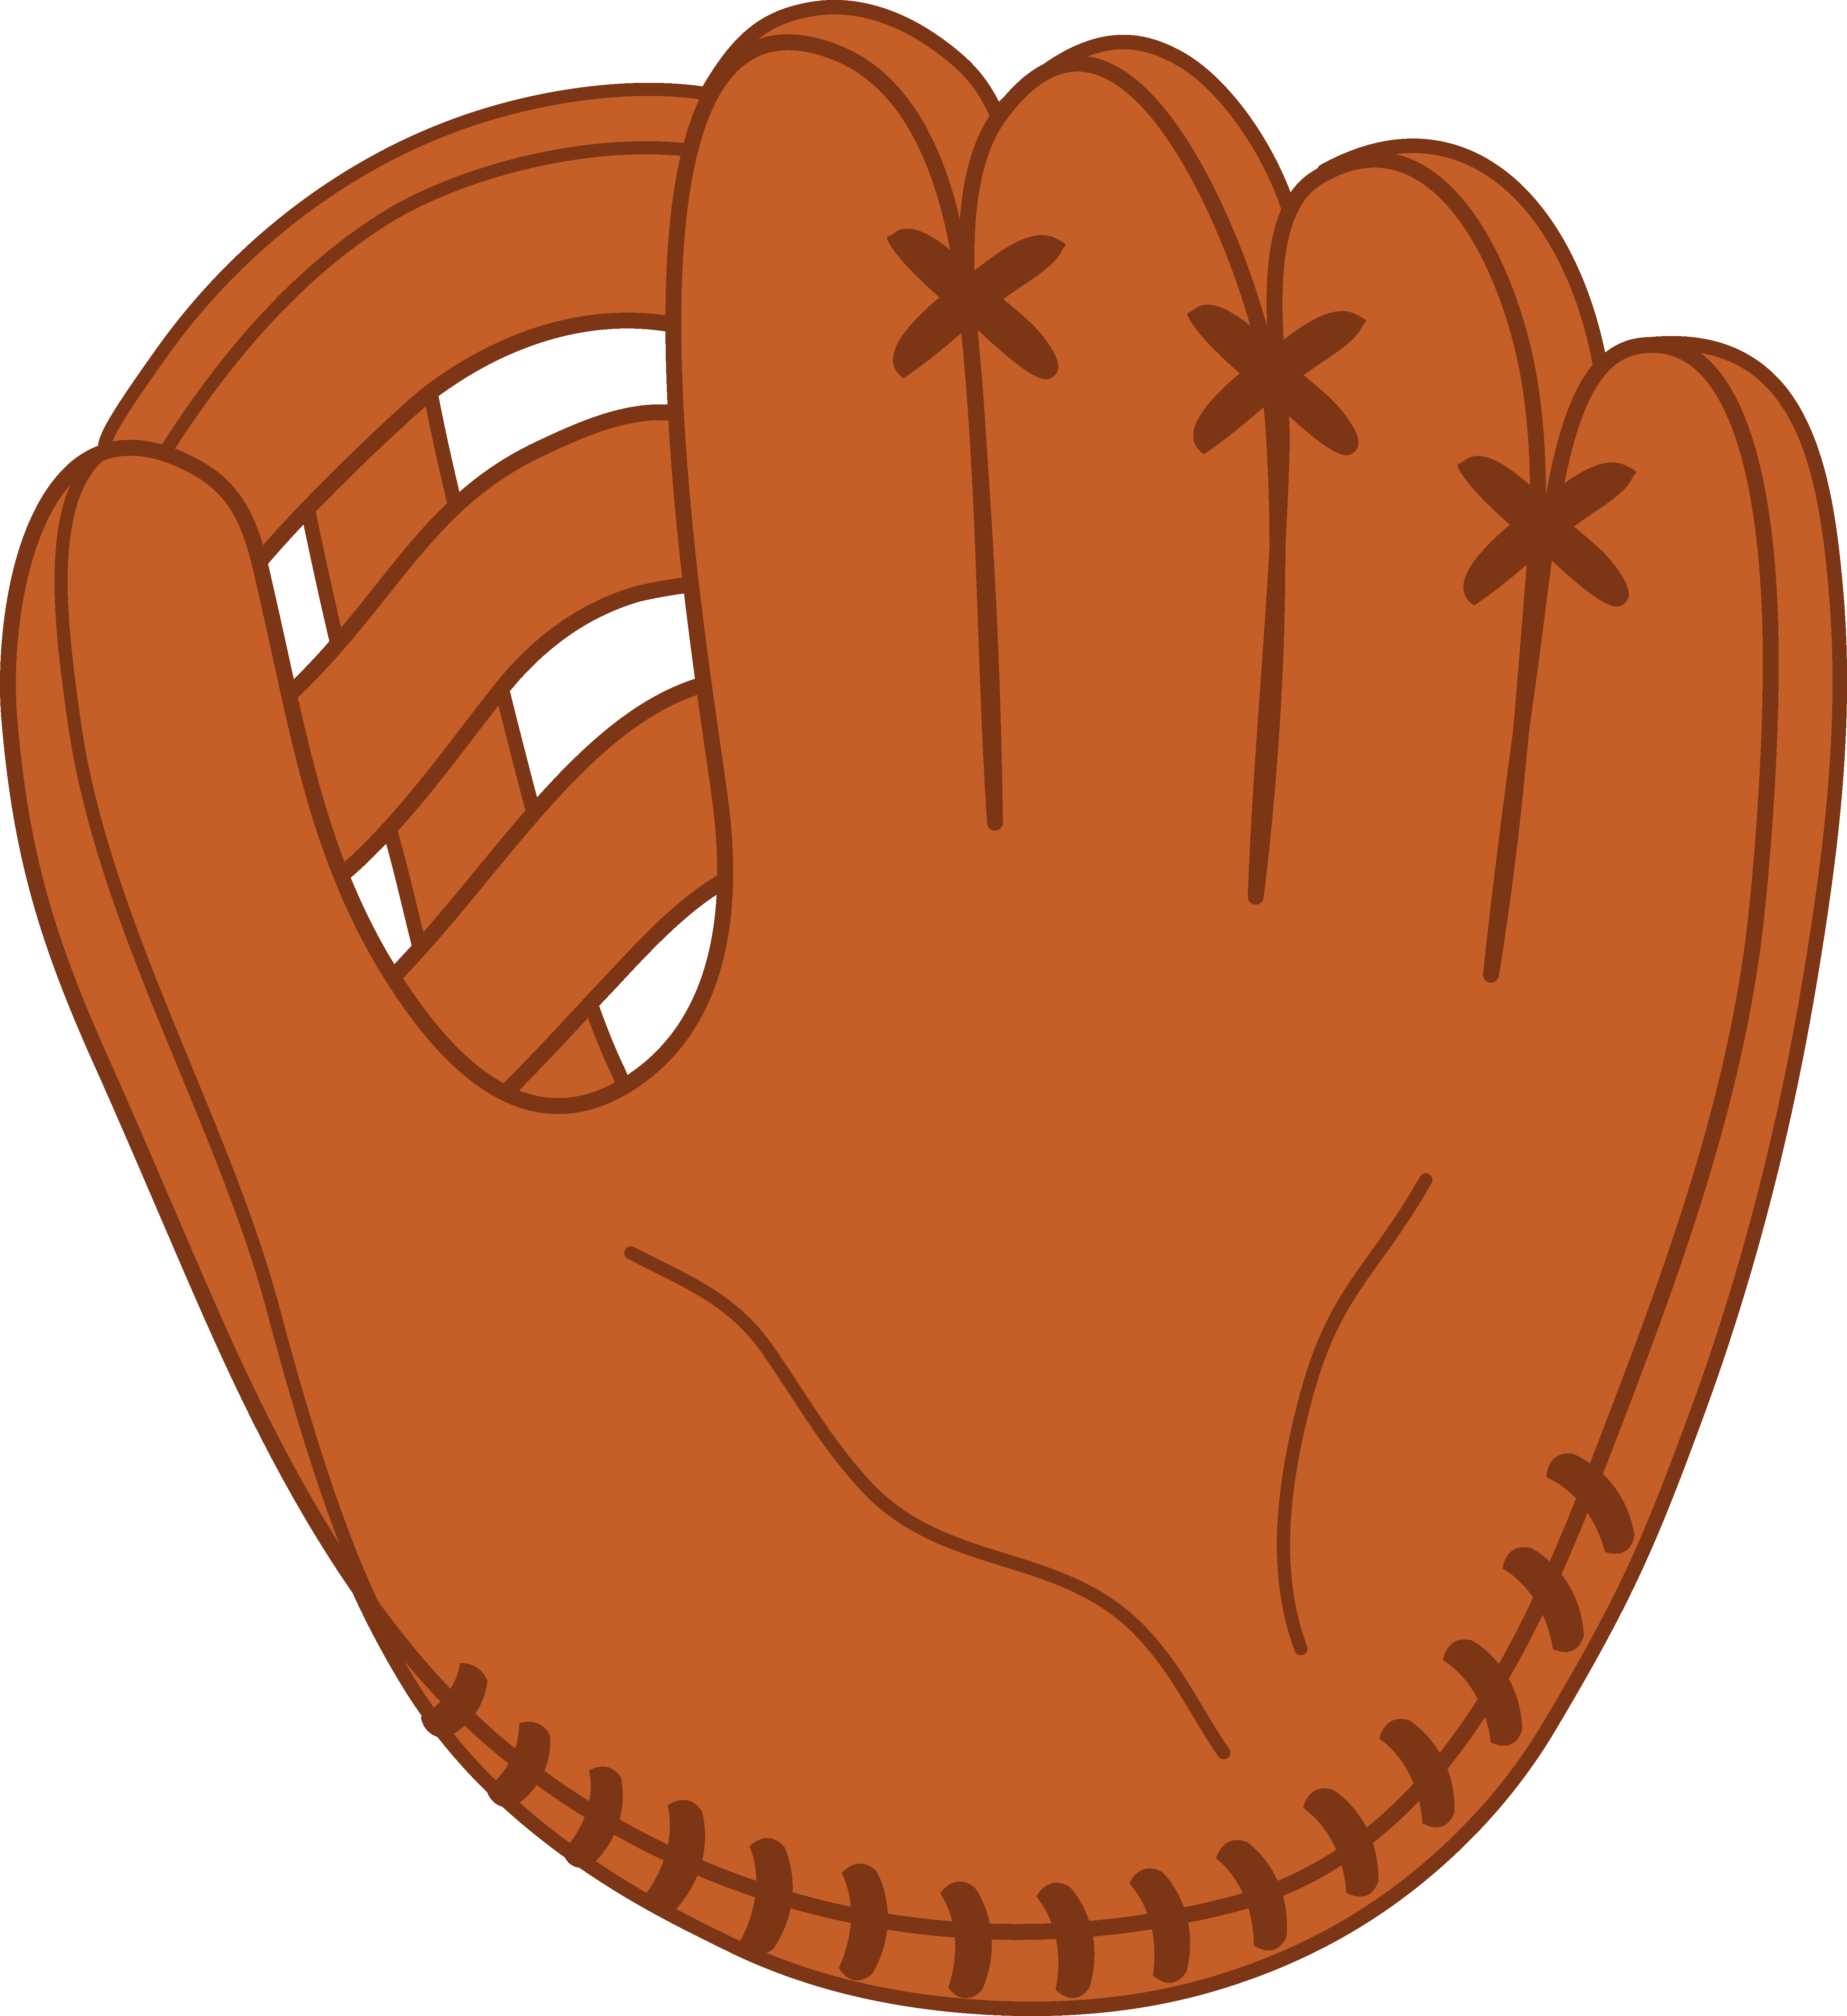 1950s style football clipart image download baseball mitt graphic | Logo Research | Pinterest | Cricut, Clip art ... image download